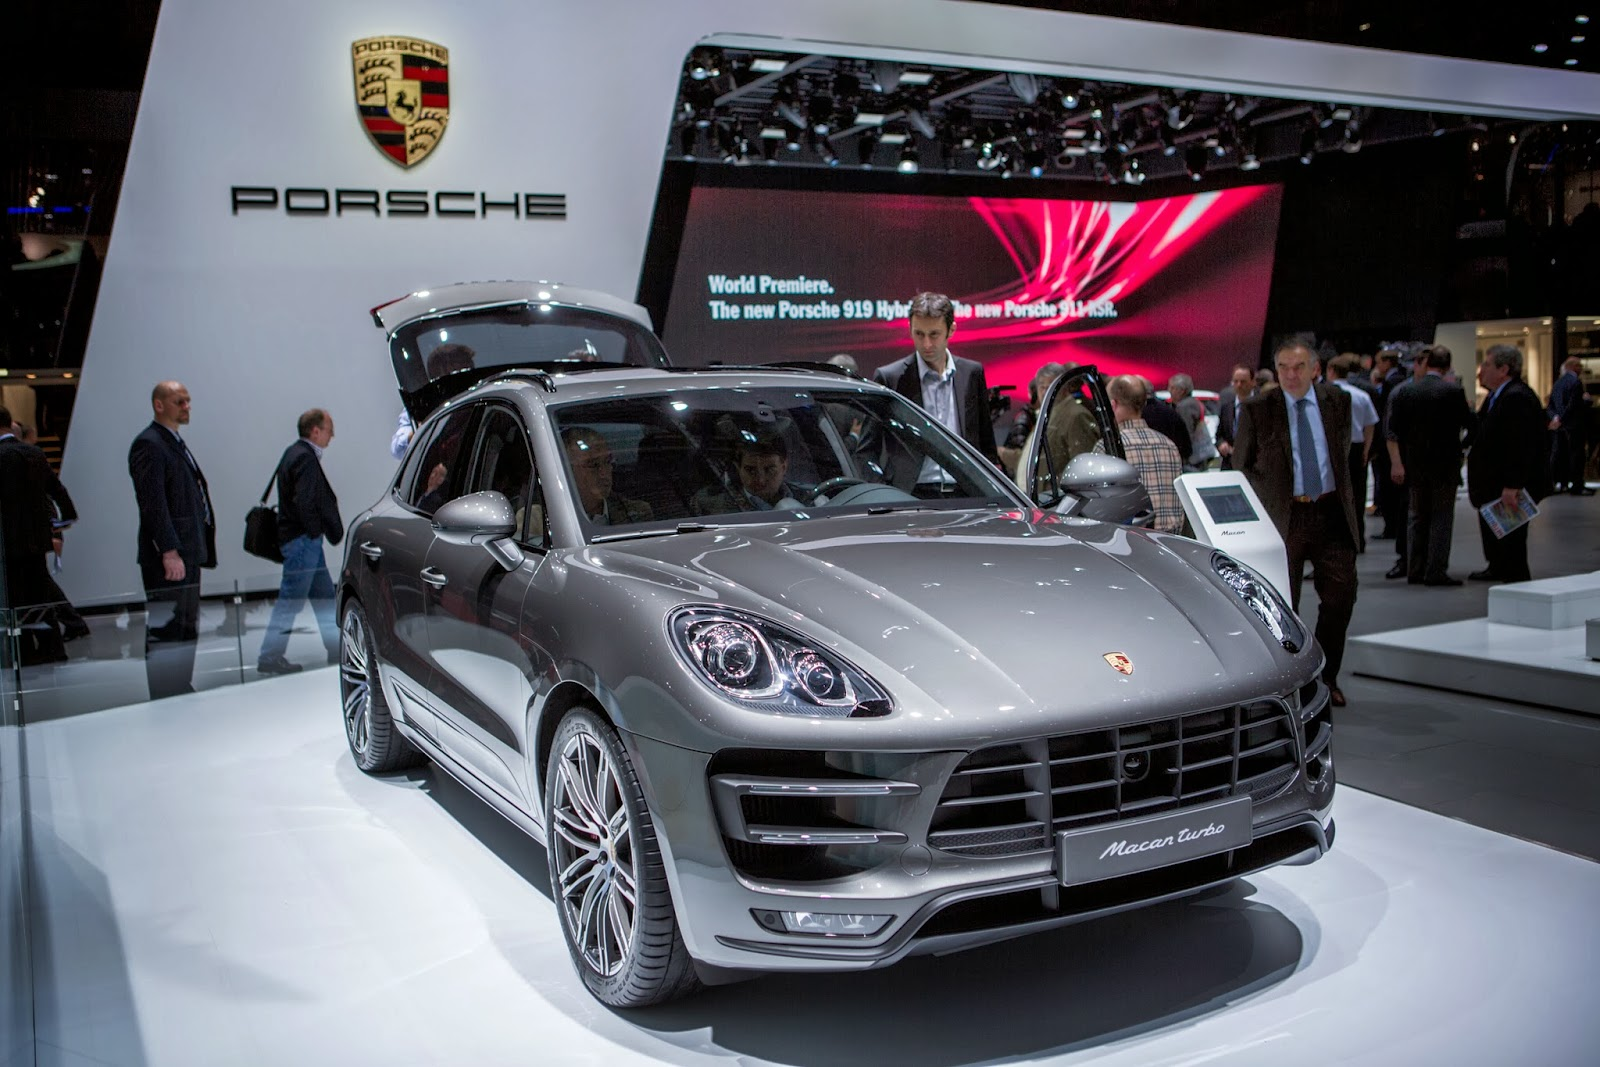 Auto Industry, Auto Show, Automobile, Business, Cars, Exhibition, Geneva, Geneva Motor Show, Lamborghini, Macan Turbo, Motor Show, News, Peugeot, Porsche, Smart cars, Technology,